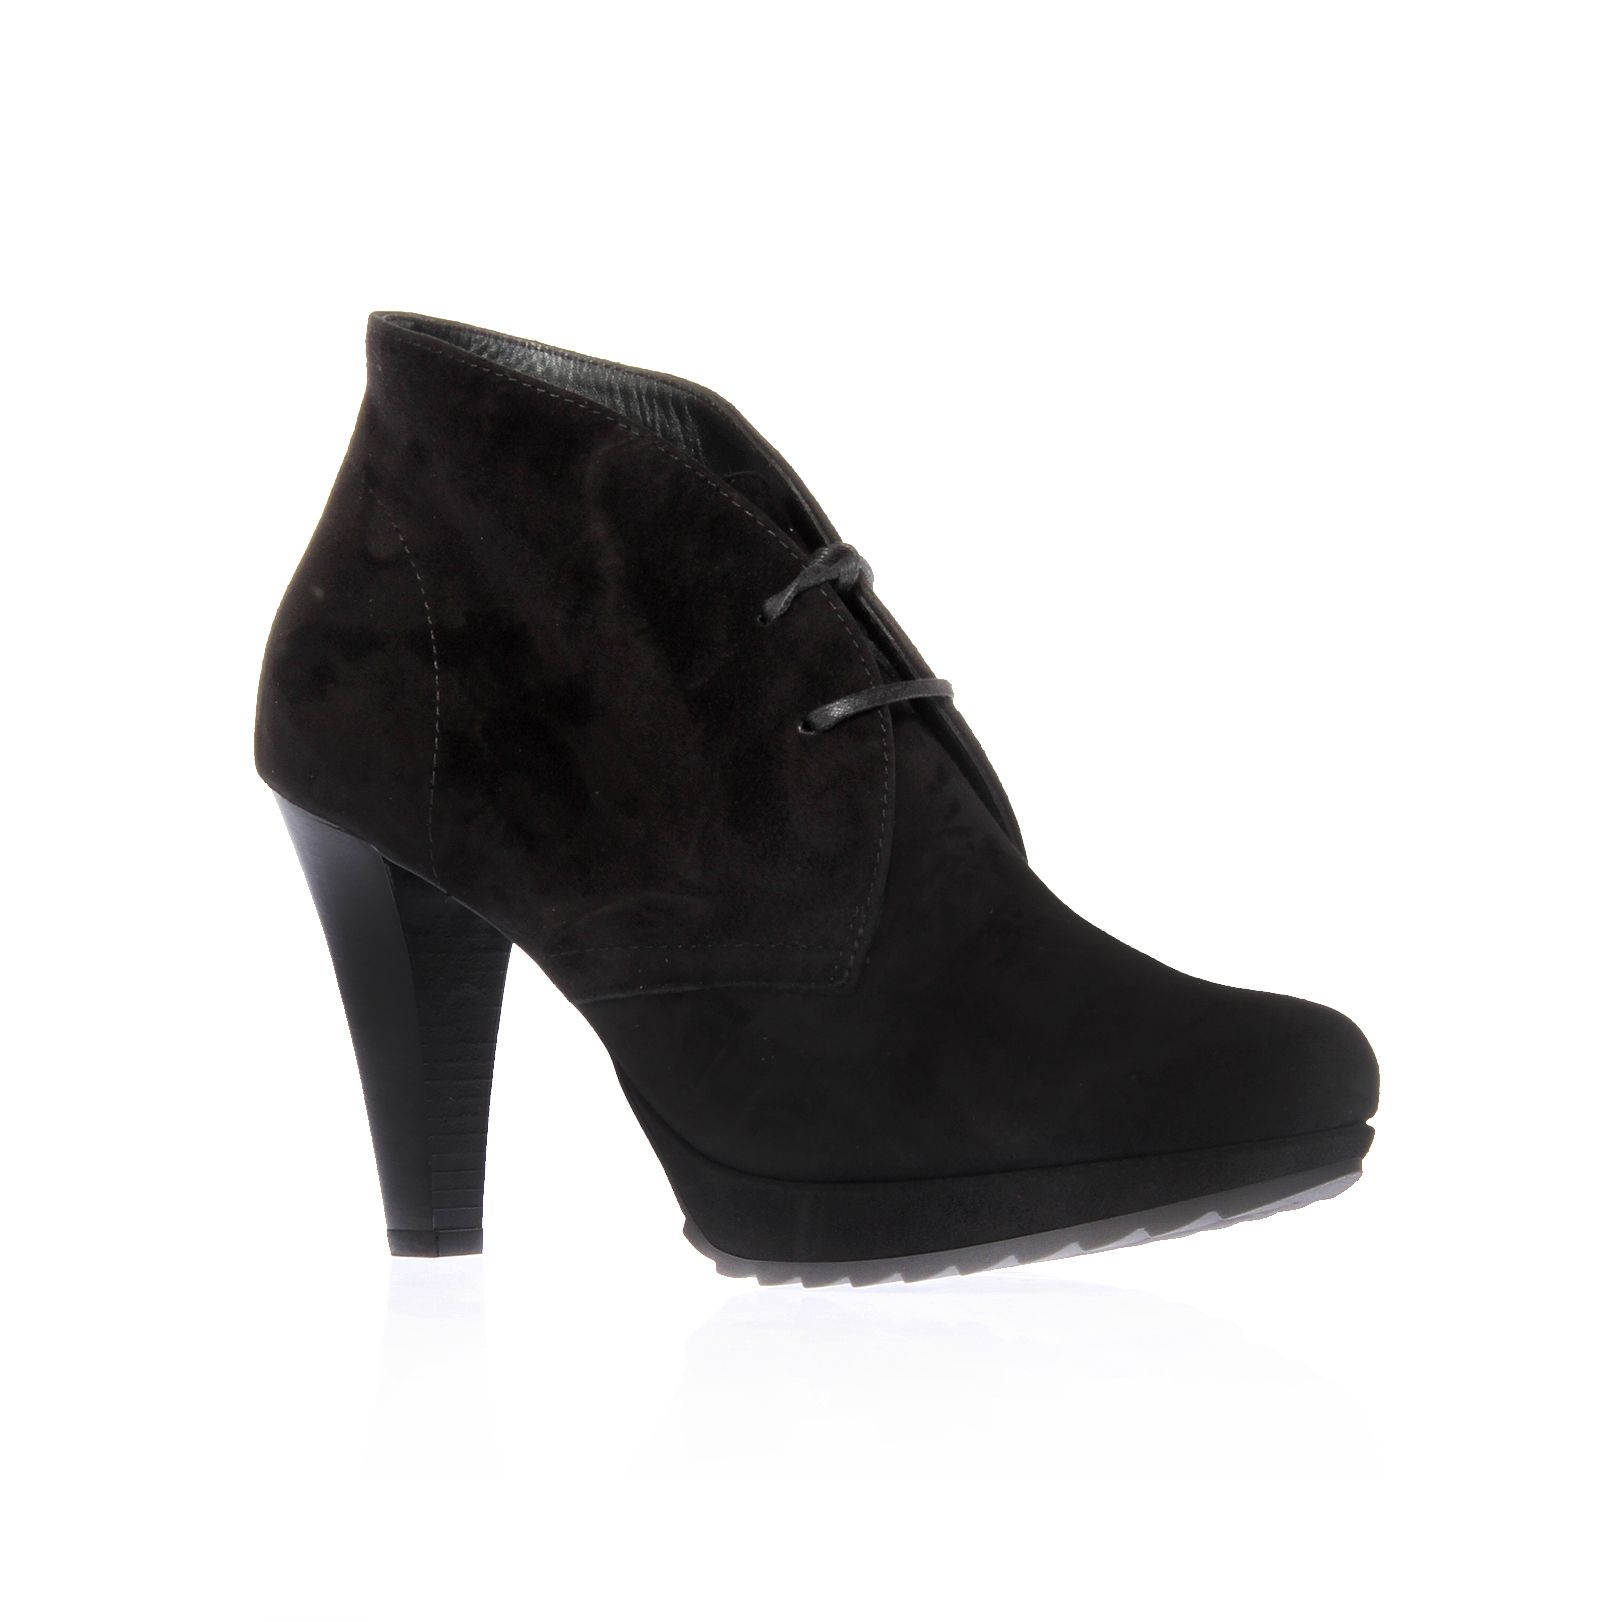 Hollie lace up ankle boots